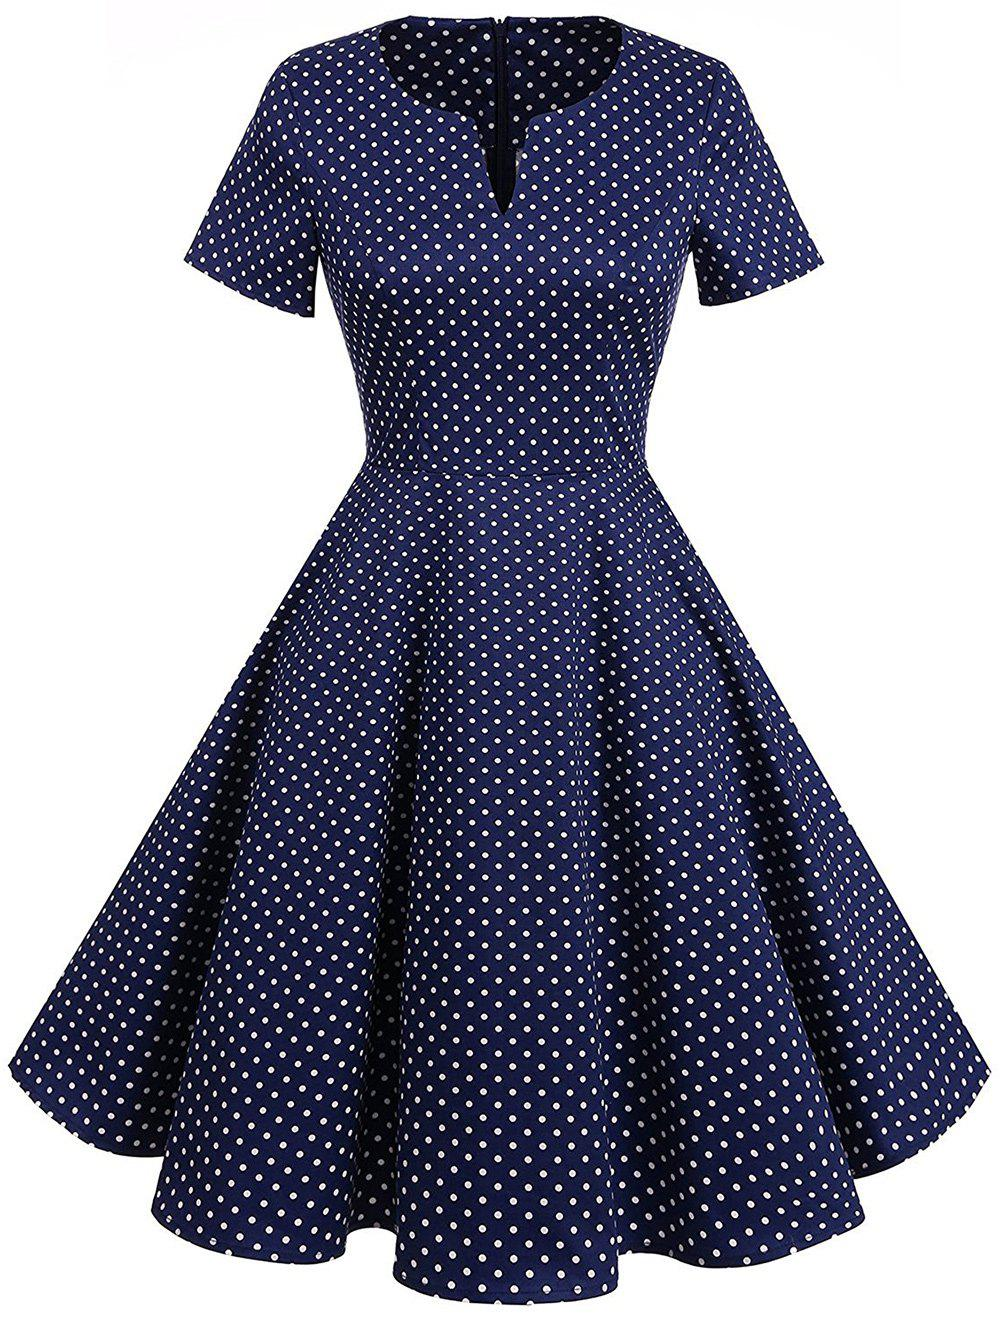 Vintage Fit and Flare Polka Dot DressWOMEN<br><br>Size: 2XL; Color: PURPLISH BLUE; Style: Vintage; Material: Cotton,Polyester; Silhouette: A-Line; Dresses Length: Knee-Length; Neckline: V-Neck; Sleeve Length: Short Sleeves; Pattern Type: Polka Dot; With Belt: No; Season: Fall,Spring,Summer; Weight: 0.3700kg; Package Contents: 1 x Dress;